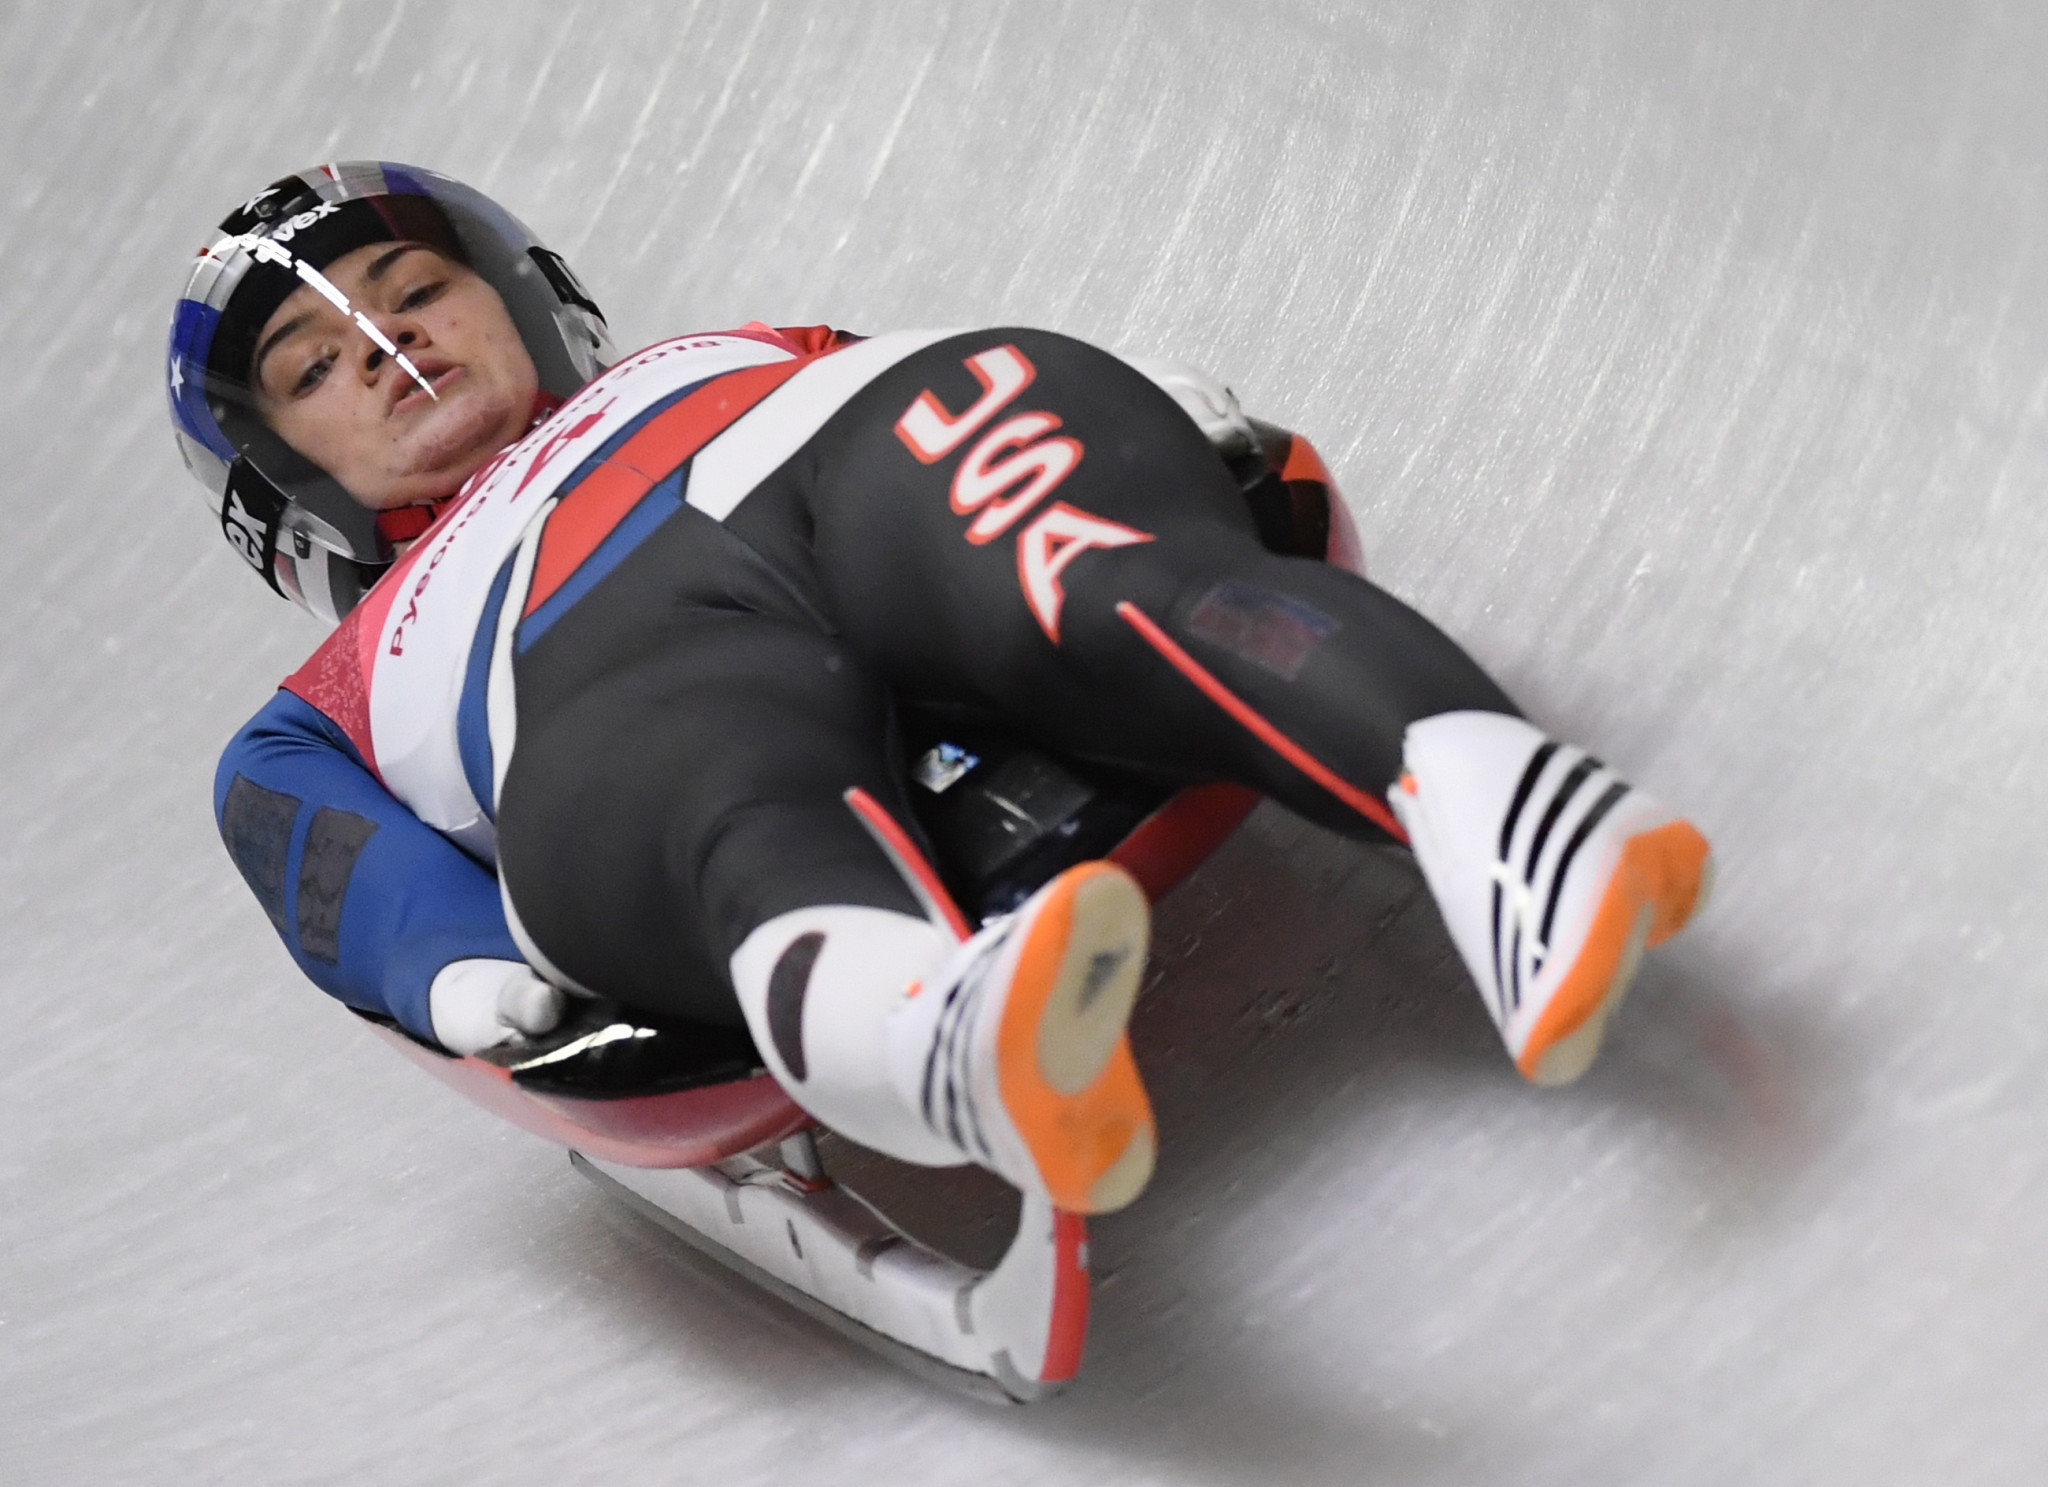 USA Luge continuing development during the COVID-19 pandemic